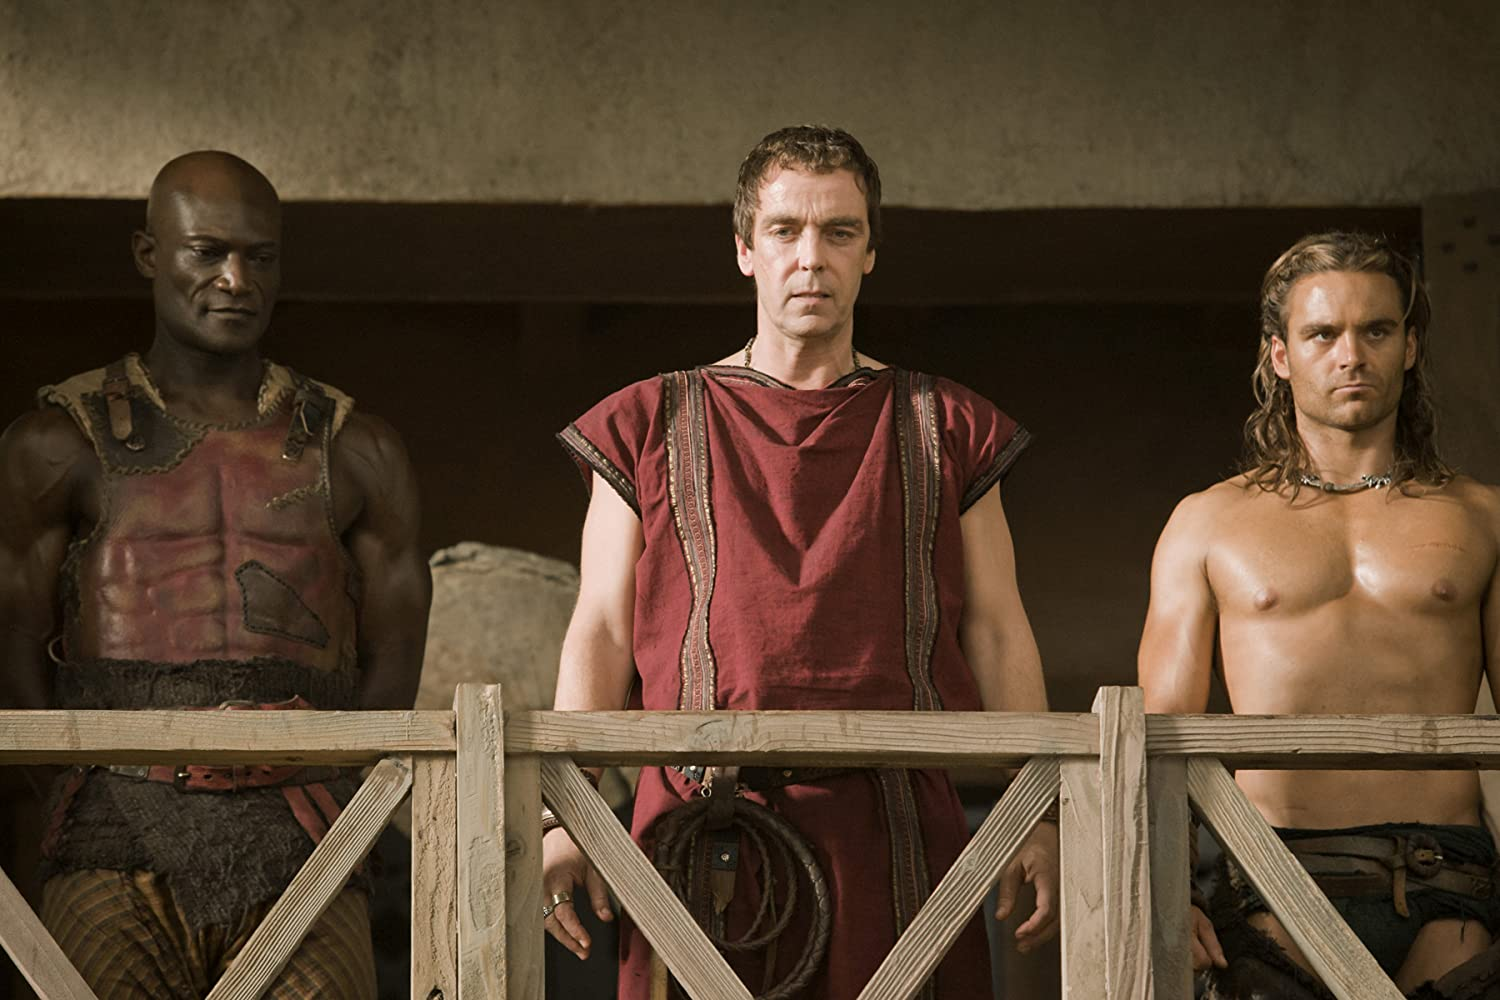 John Hannah, Peter Mensah, and Dustin Clare in Spartacus: Gods of the Arena (2011)